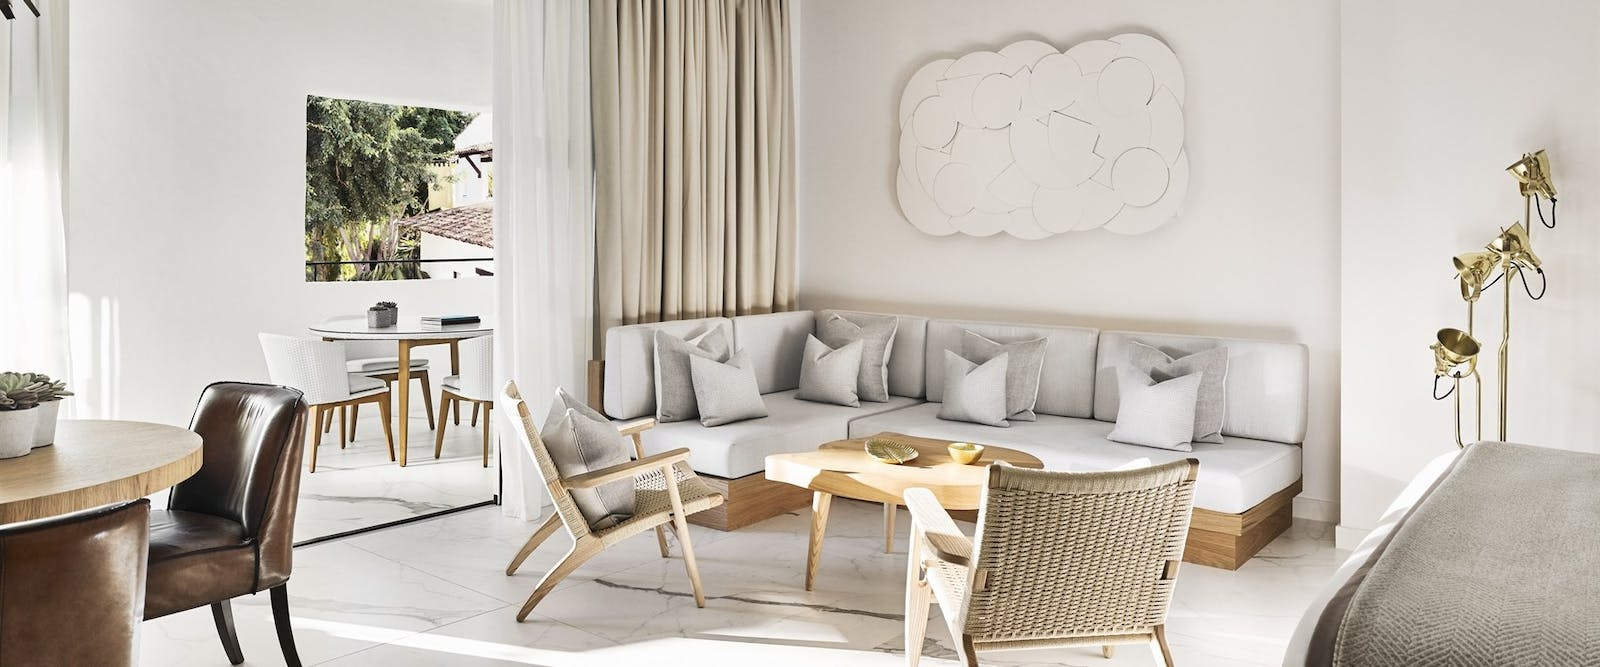 Junior Suite Living Area at Nobu Marbella, Costa Del Sol, Spain